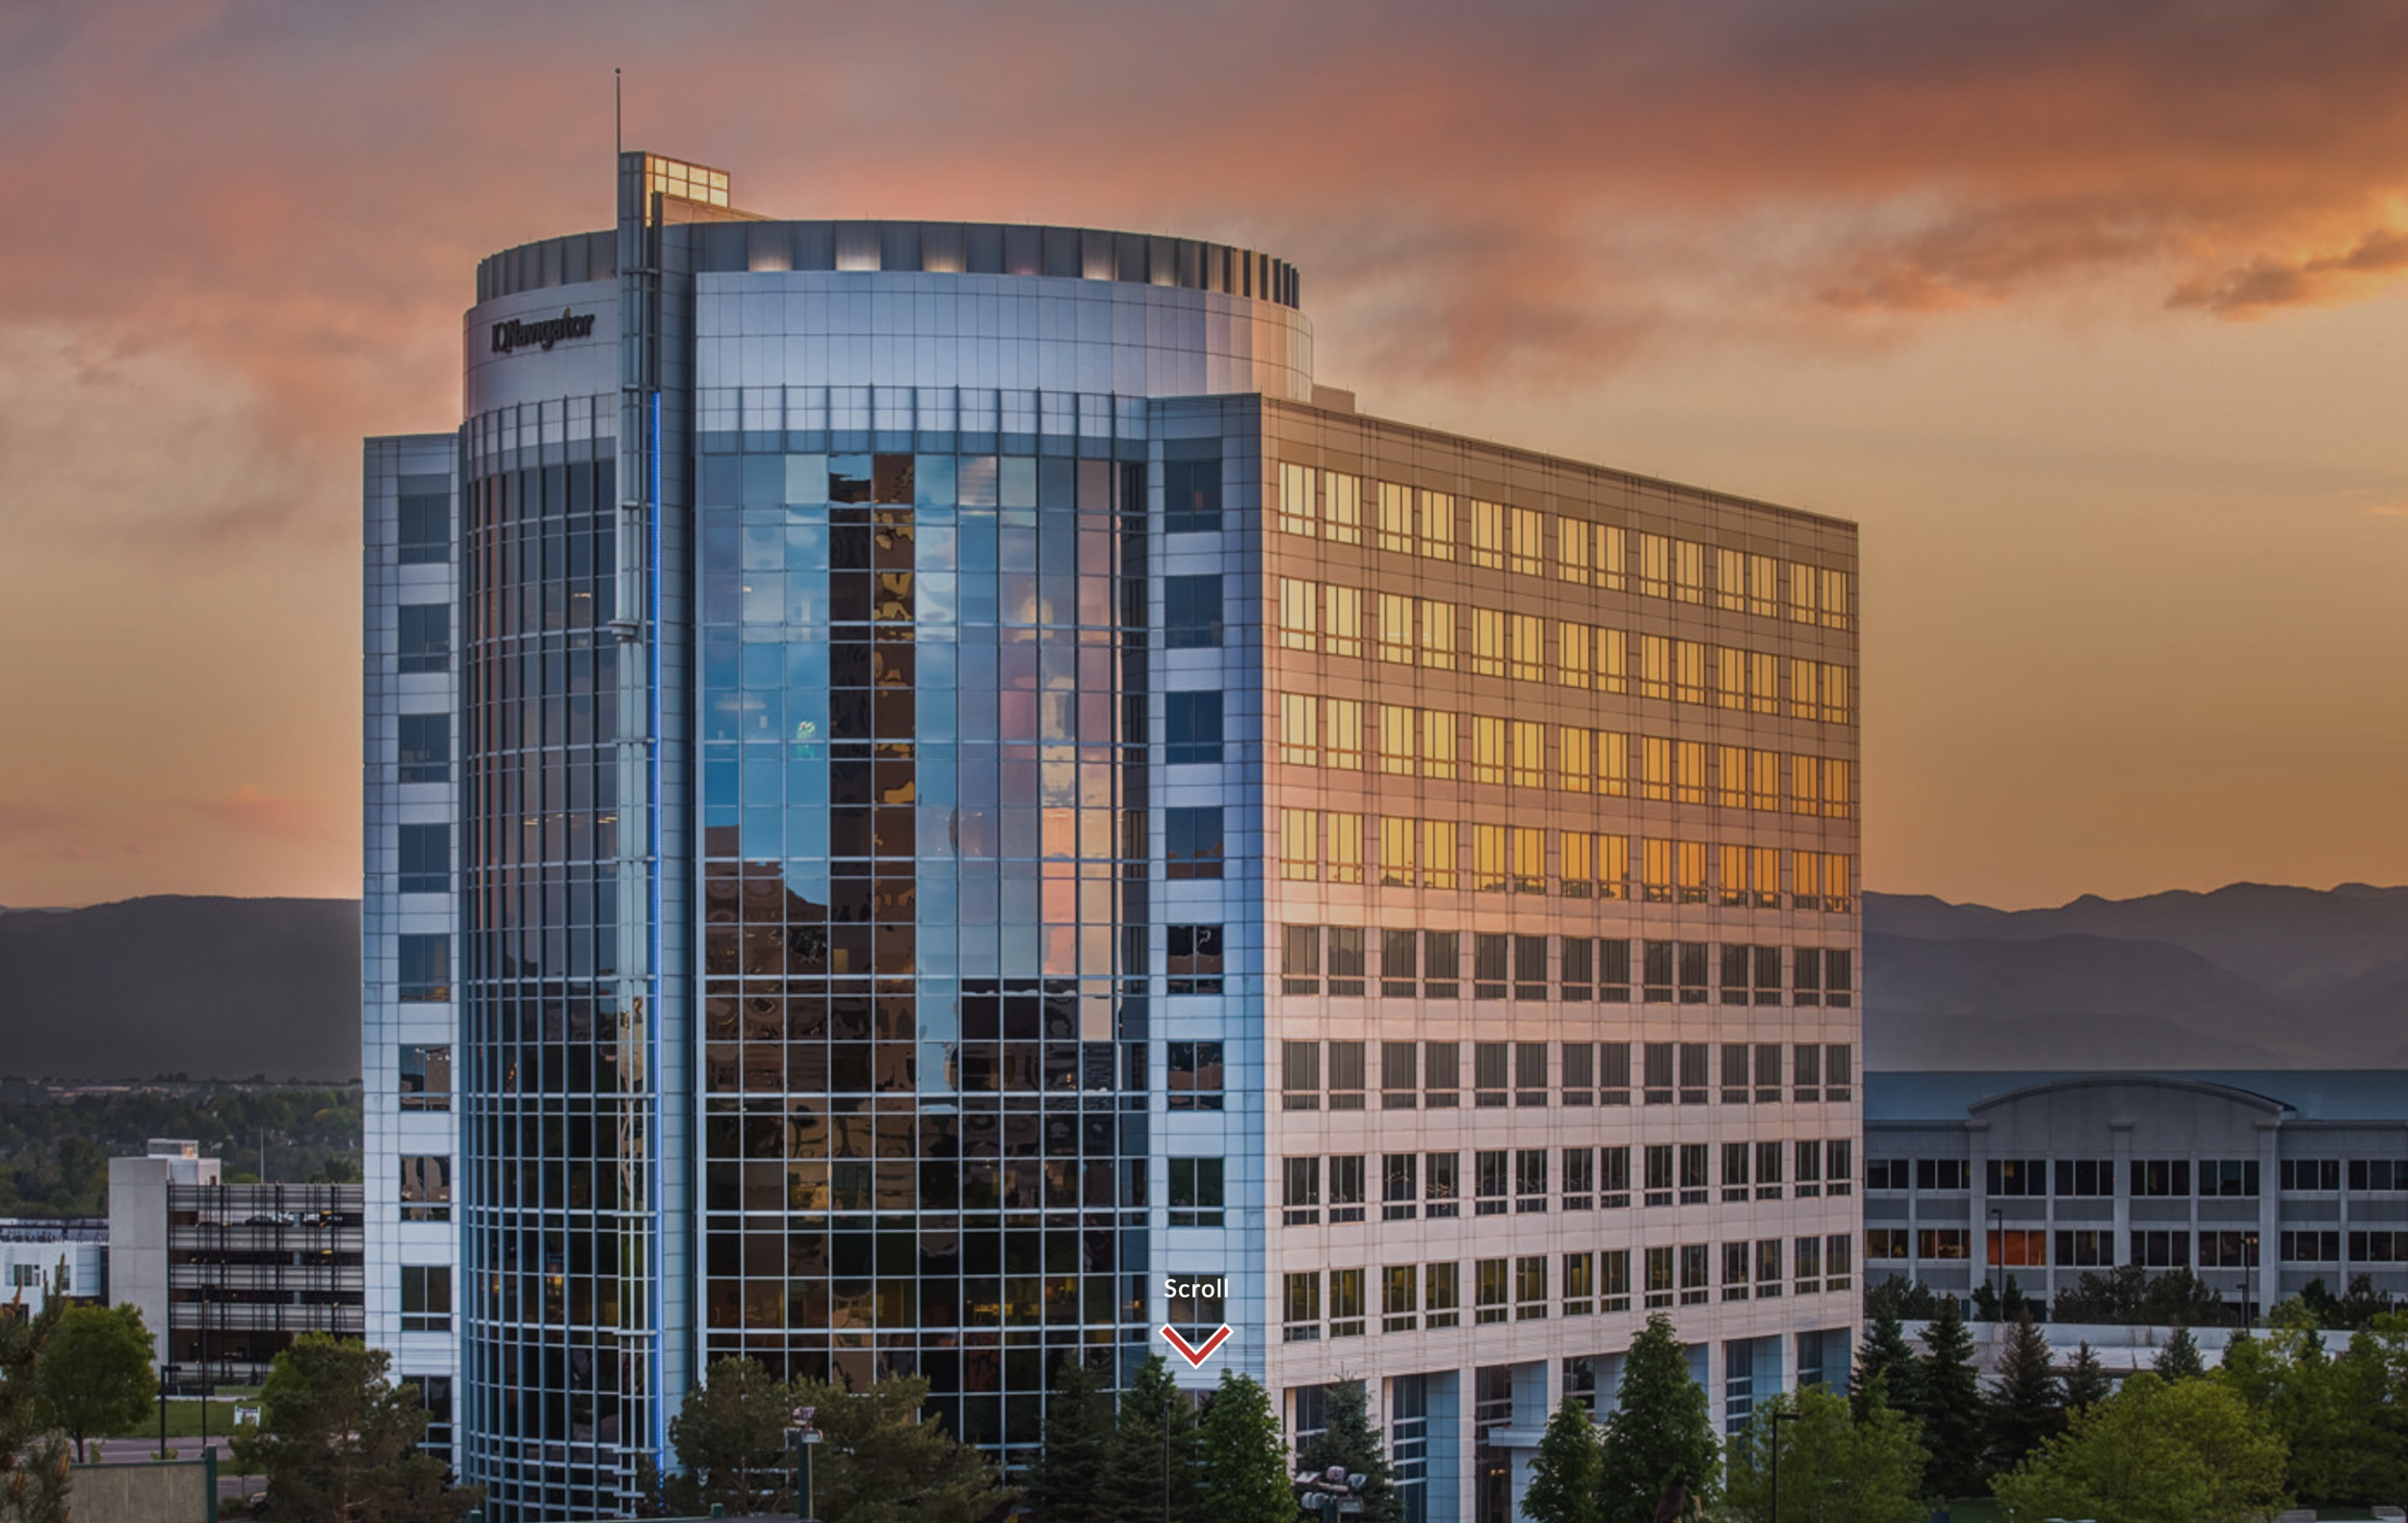 Turbine Labs is located in the Peakview Tower in Greenwood Village, Colorado.